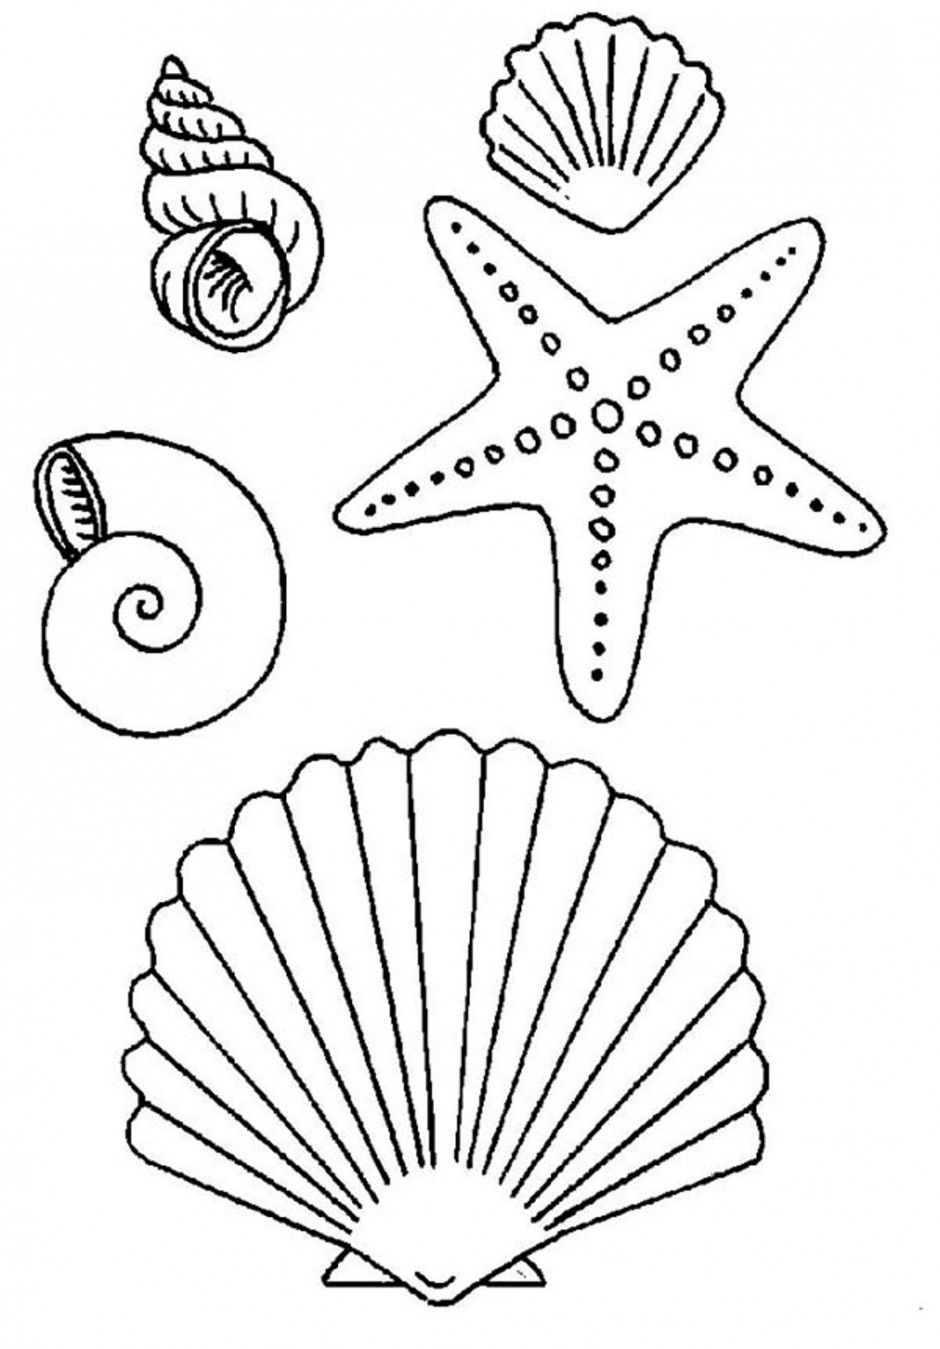 free starfish coloring page starfish free printable templates coloring pages page coloring starfish free